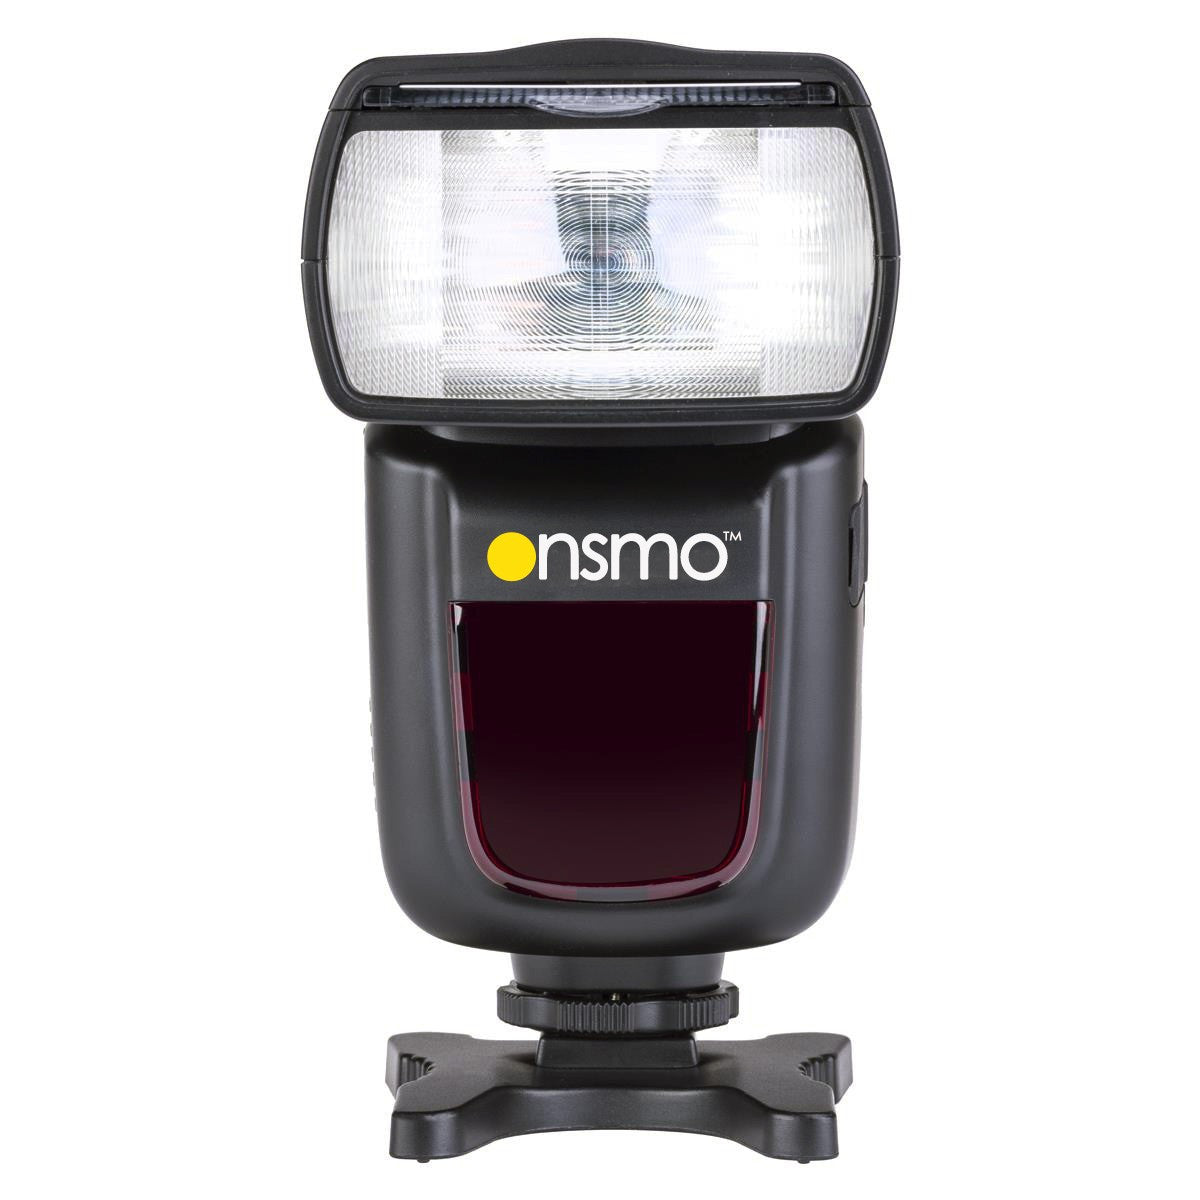 Onsmo X700 Speedlight (Godox TT600)  ( Manual ) Combo A ( 1 x X700 + 1 x Speed X Trigger )